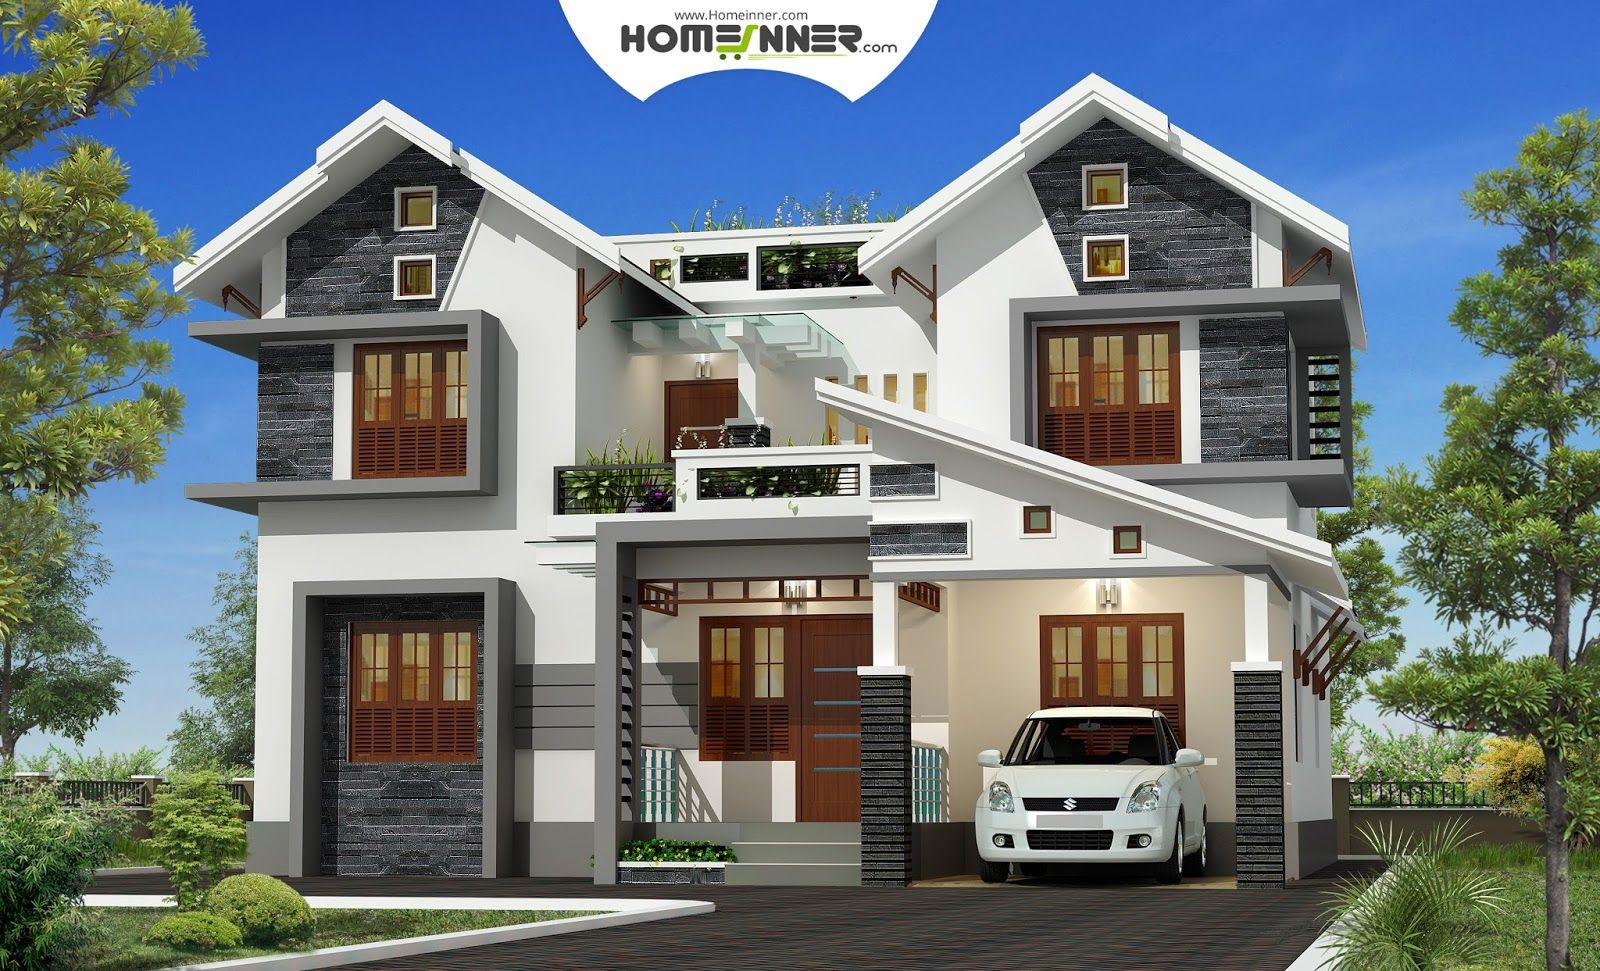 About the home design this beautiful home design has the Indian villa floor plans